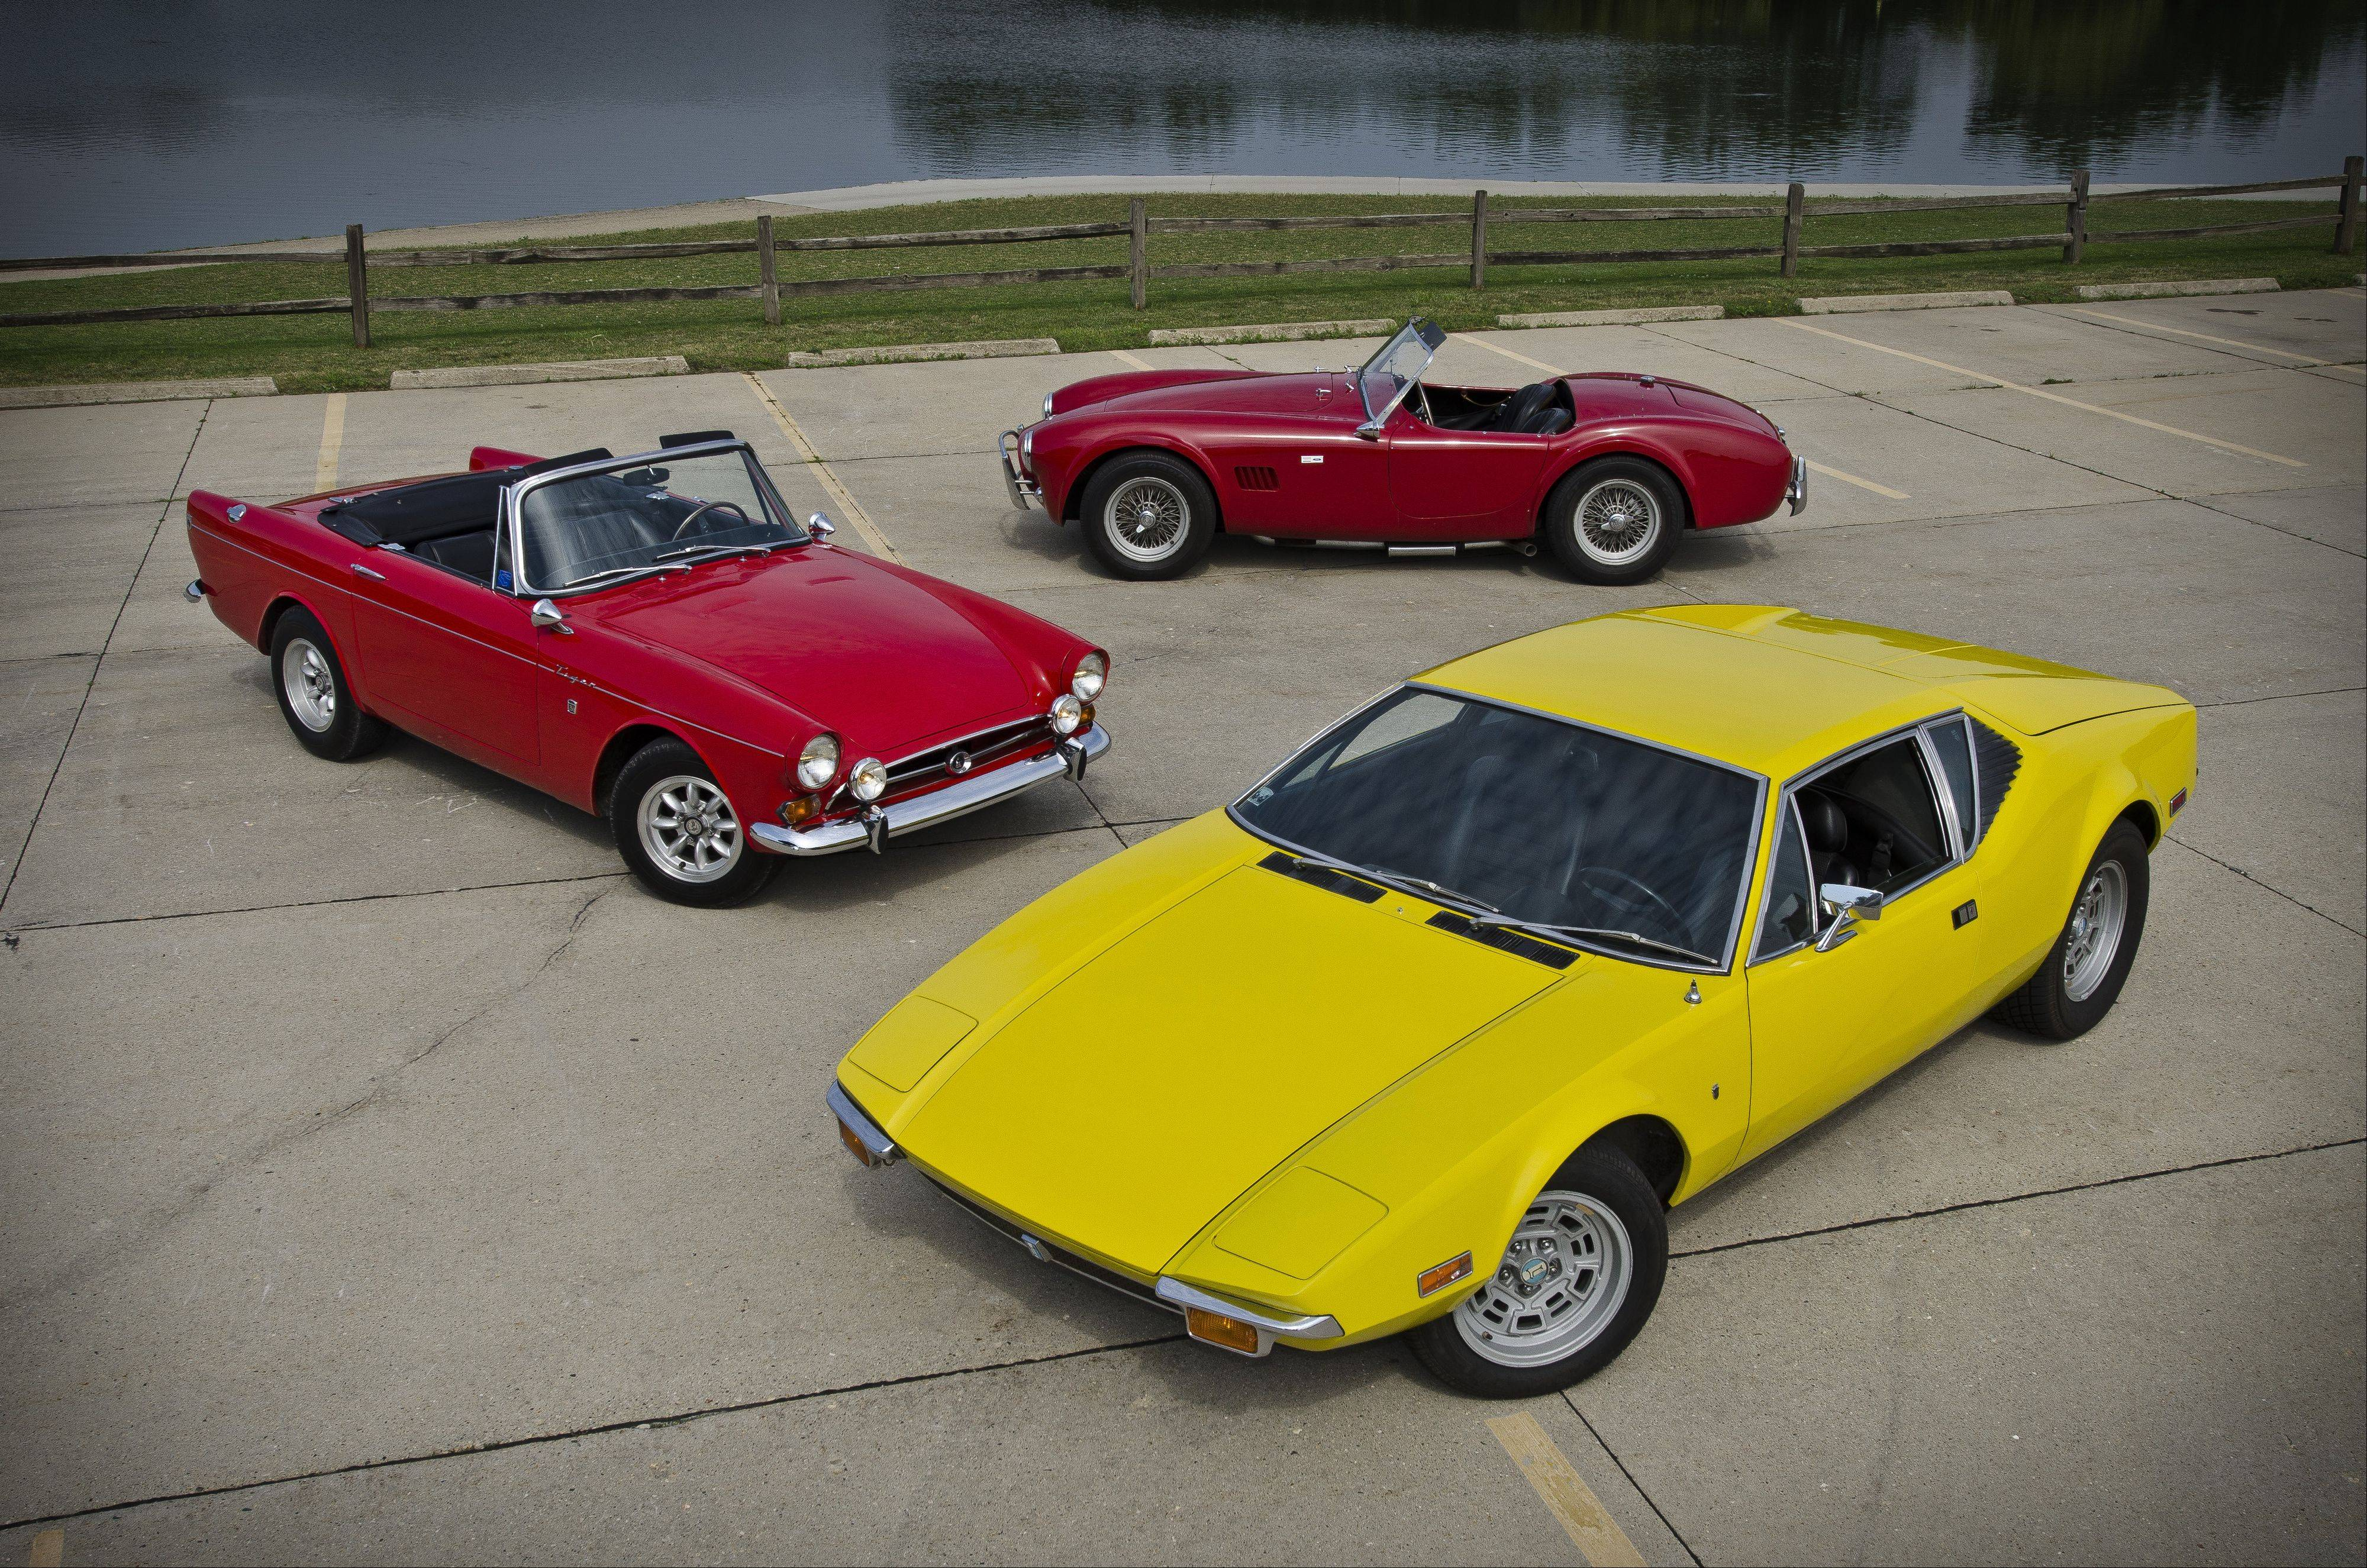 These models built at the end of the muscle-car era combine European styling and American-made brawn. Clockwise, from left, a 1966 Sunbeam Tiger MK1A, the 1965 Shelby Cobra and 1972 De Tomaso Pantera.